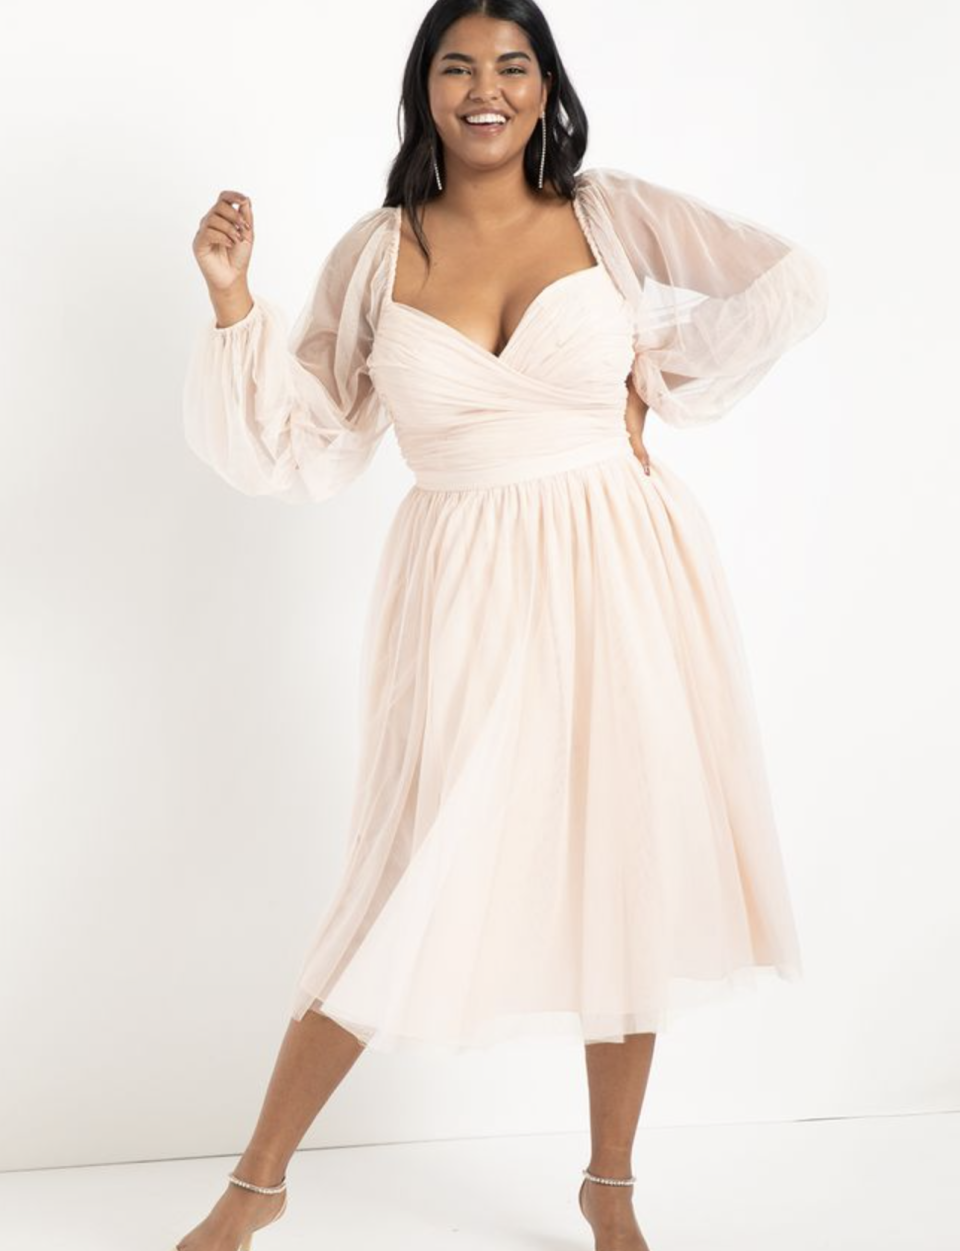 plus size model posing in  blush pink midi dress with sheer long sleeves